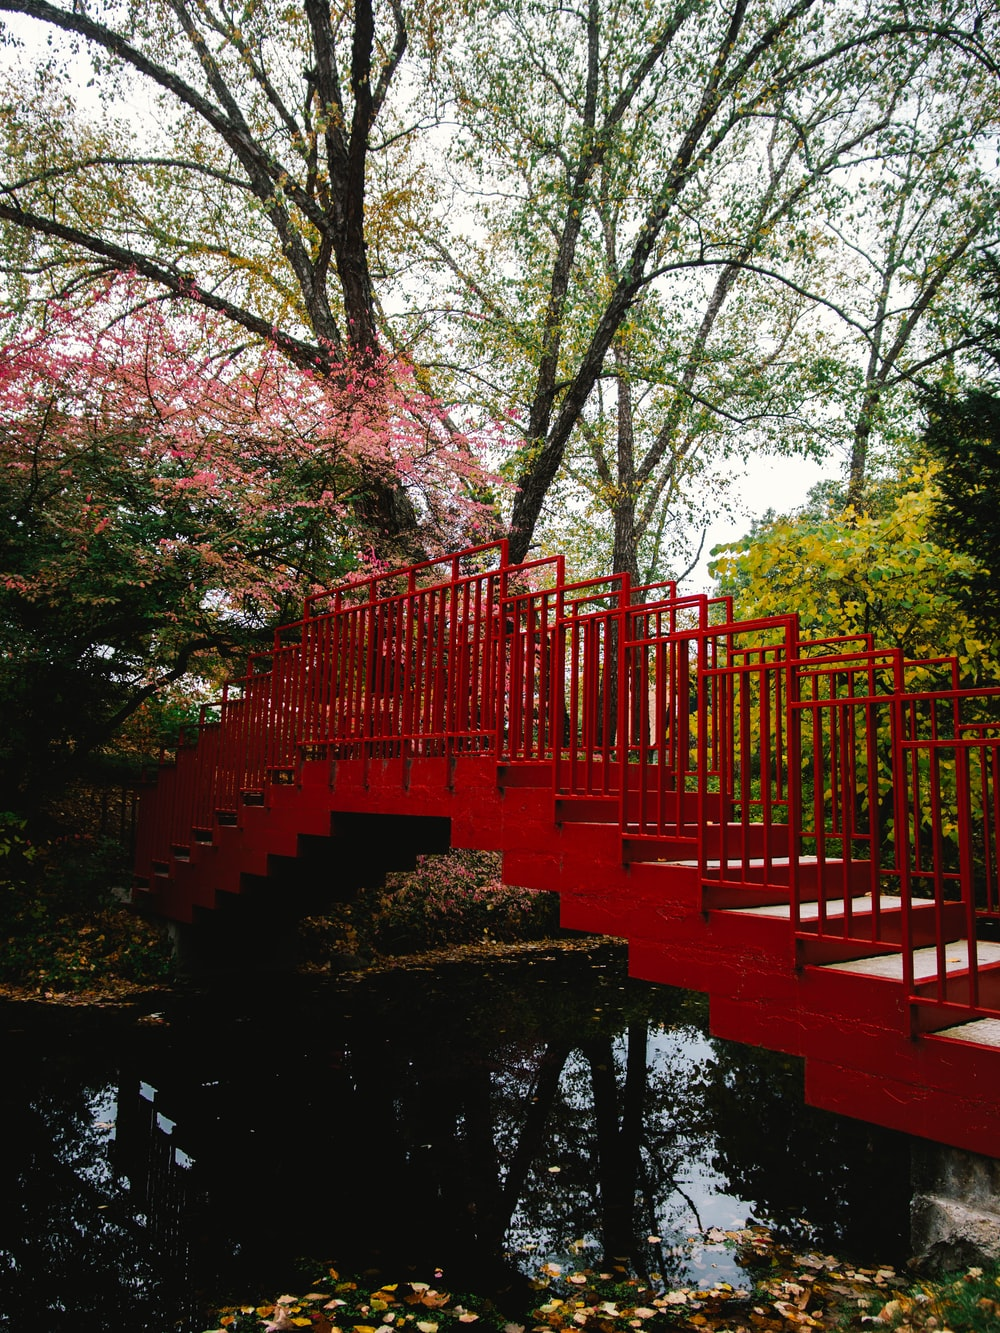 red bridge over river surrounded by trees